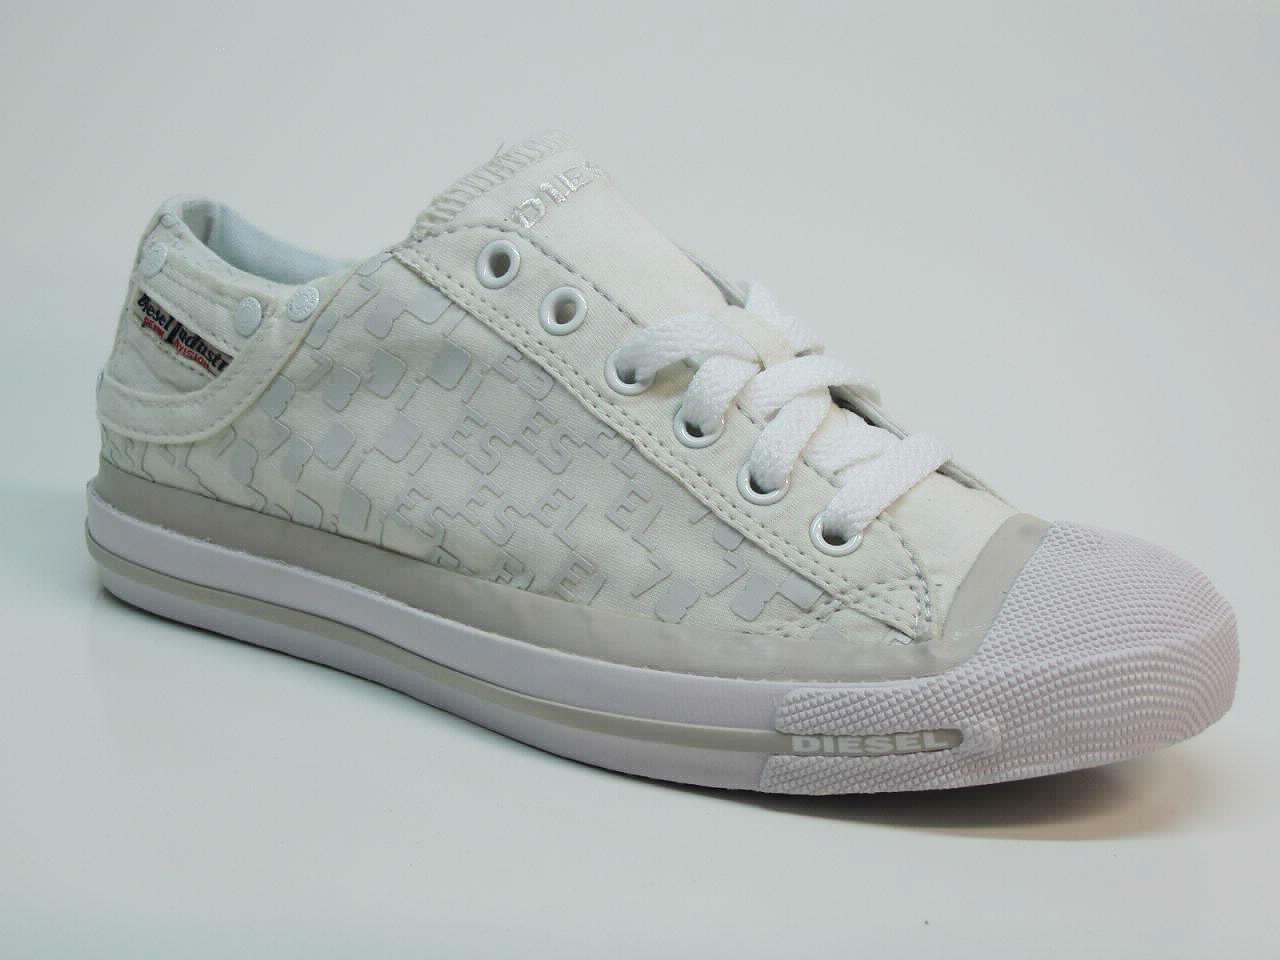 New Diesel sport sneakers trainers trainers trainers boots. Choose model/Taille. Not leather. Vegan. fc3a5c